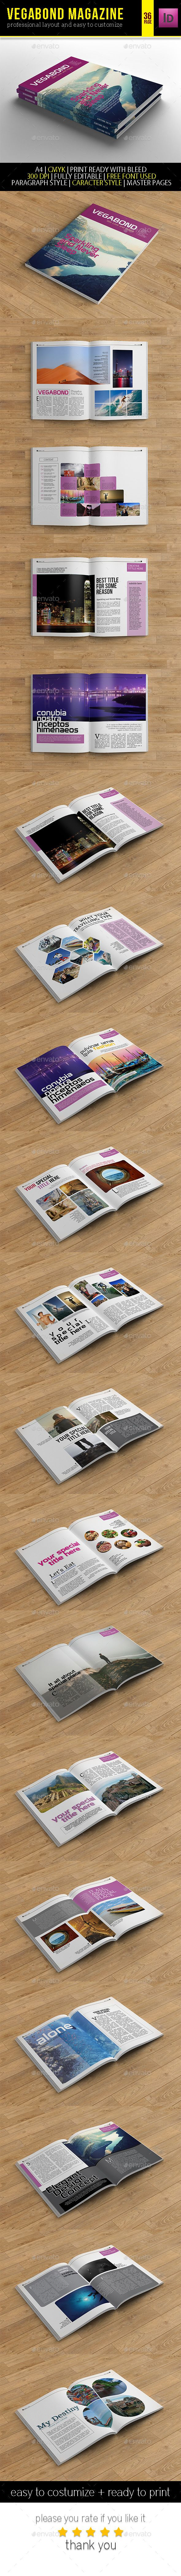 Pin by best Graphic Design on Best Magazine Templates